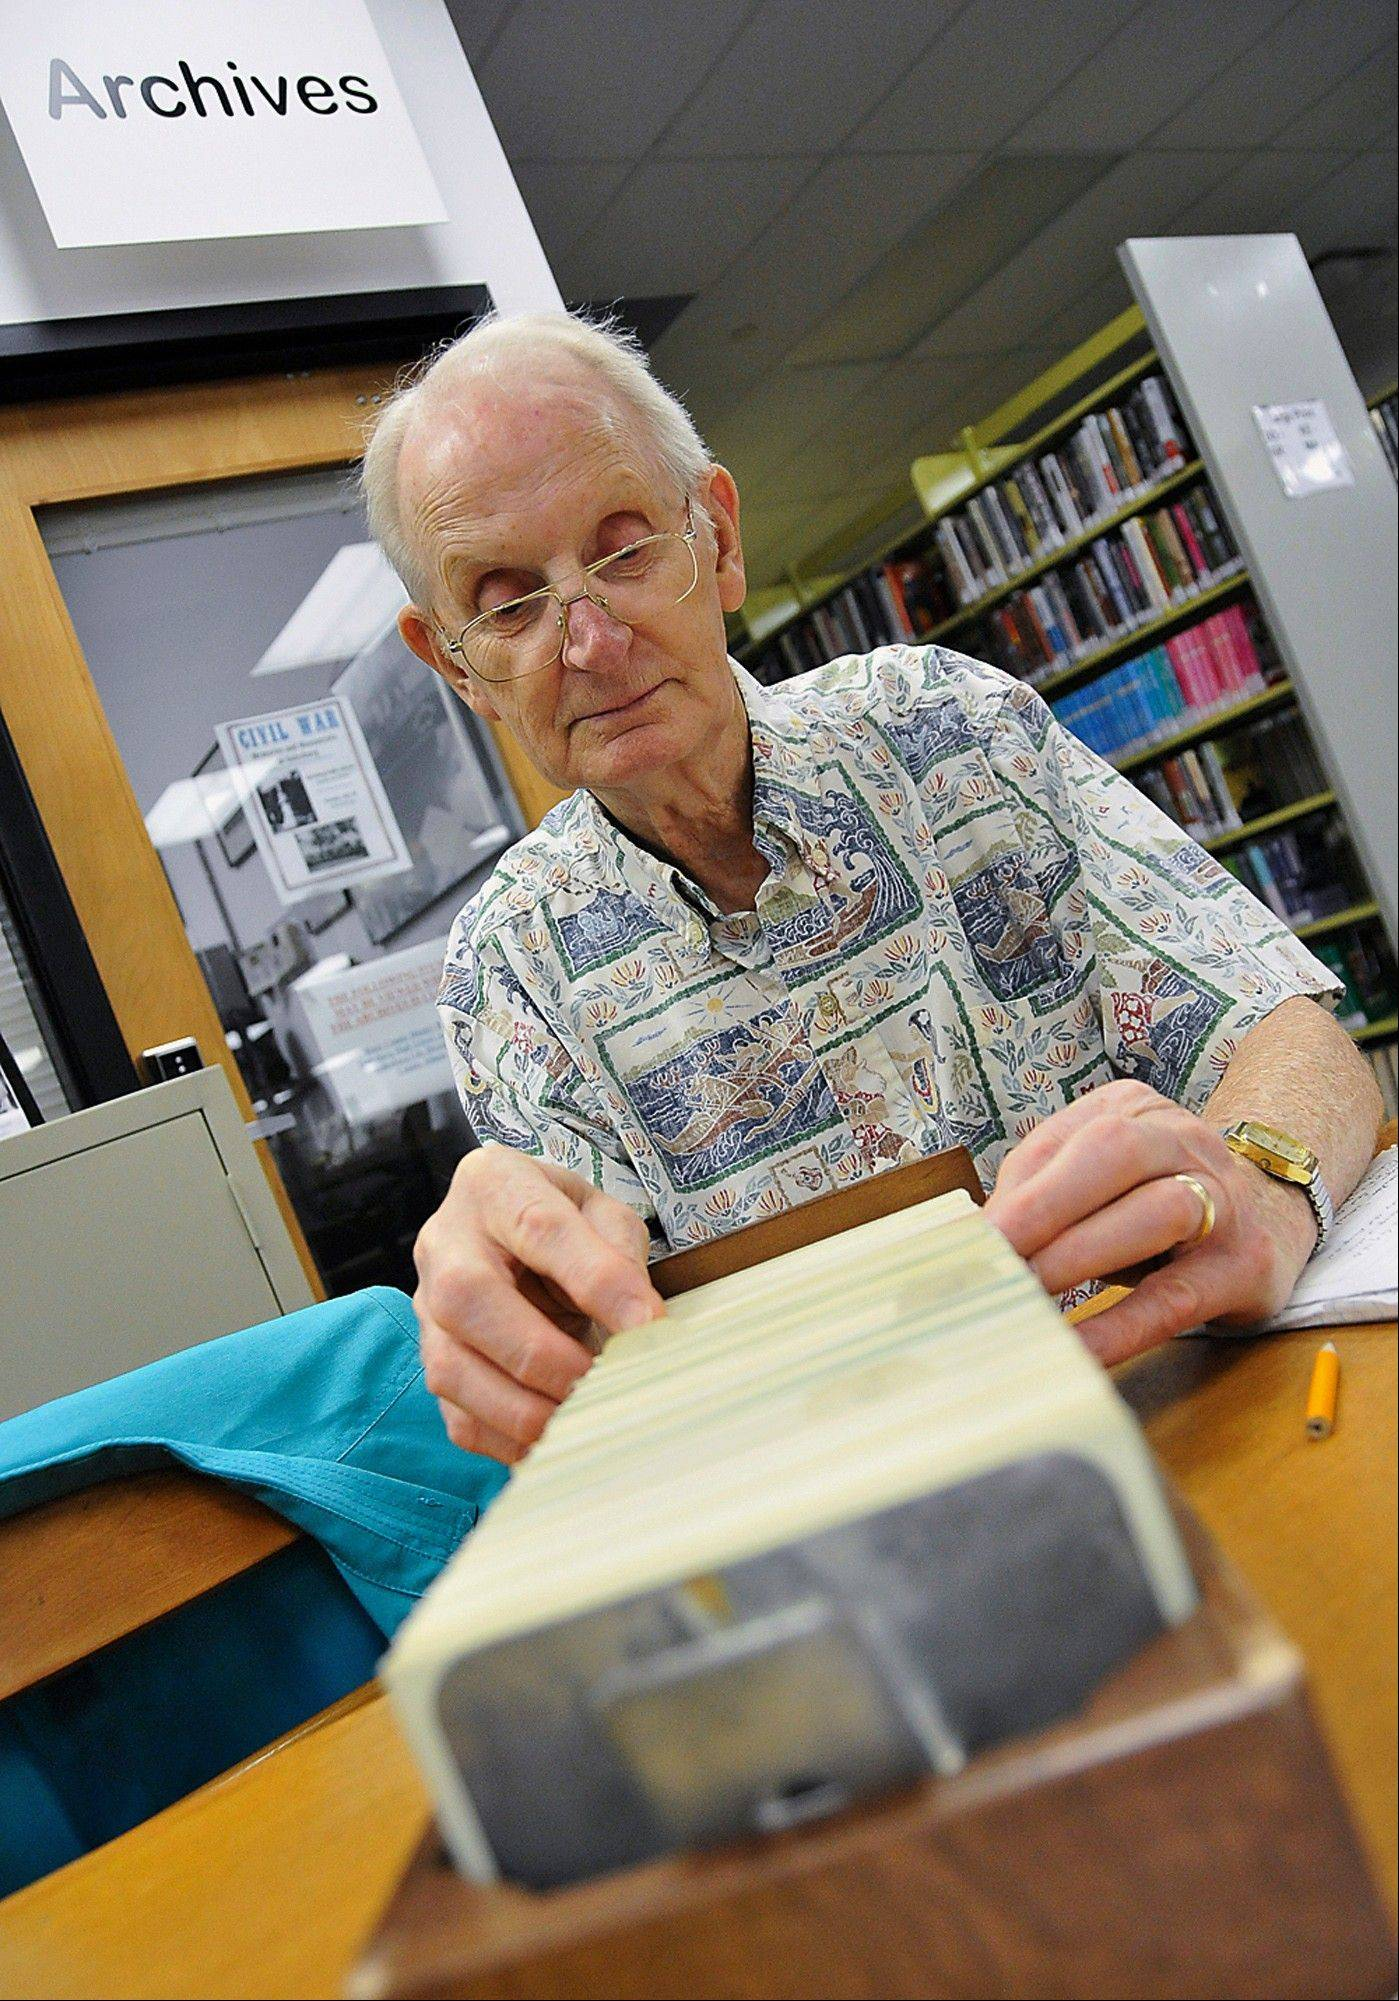 Ray Wilson of Abingdon, Ill., consults files from the archives at the Galesburg Public Library genealogy lock-in. Enthusiasts were locked inside for several hours to hunt and search for missing links in their ancestry.